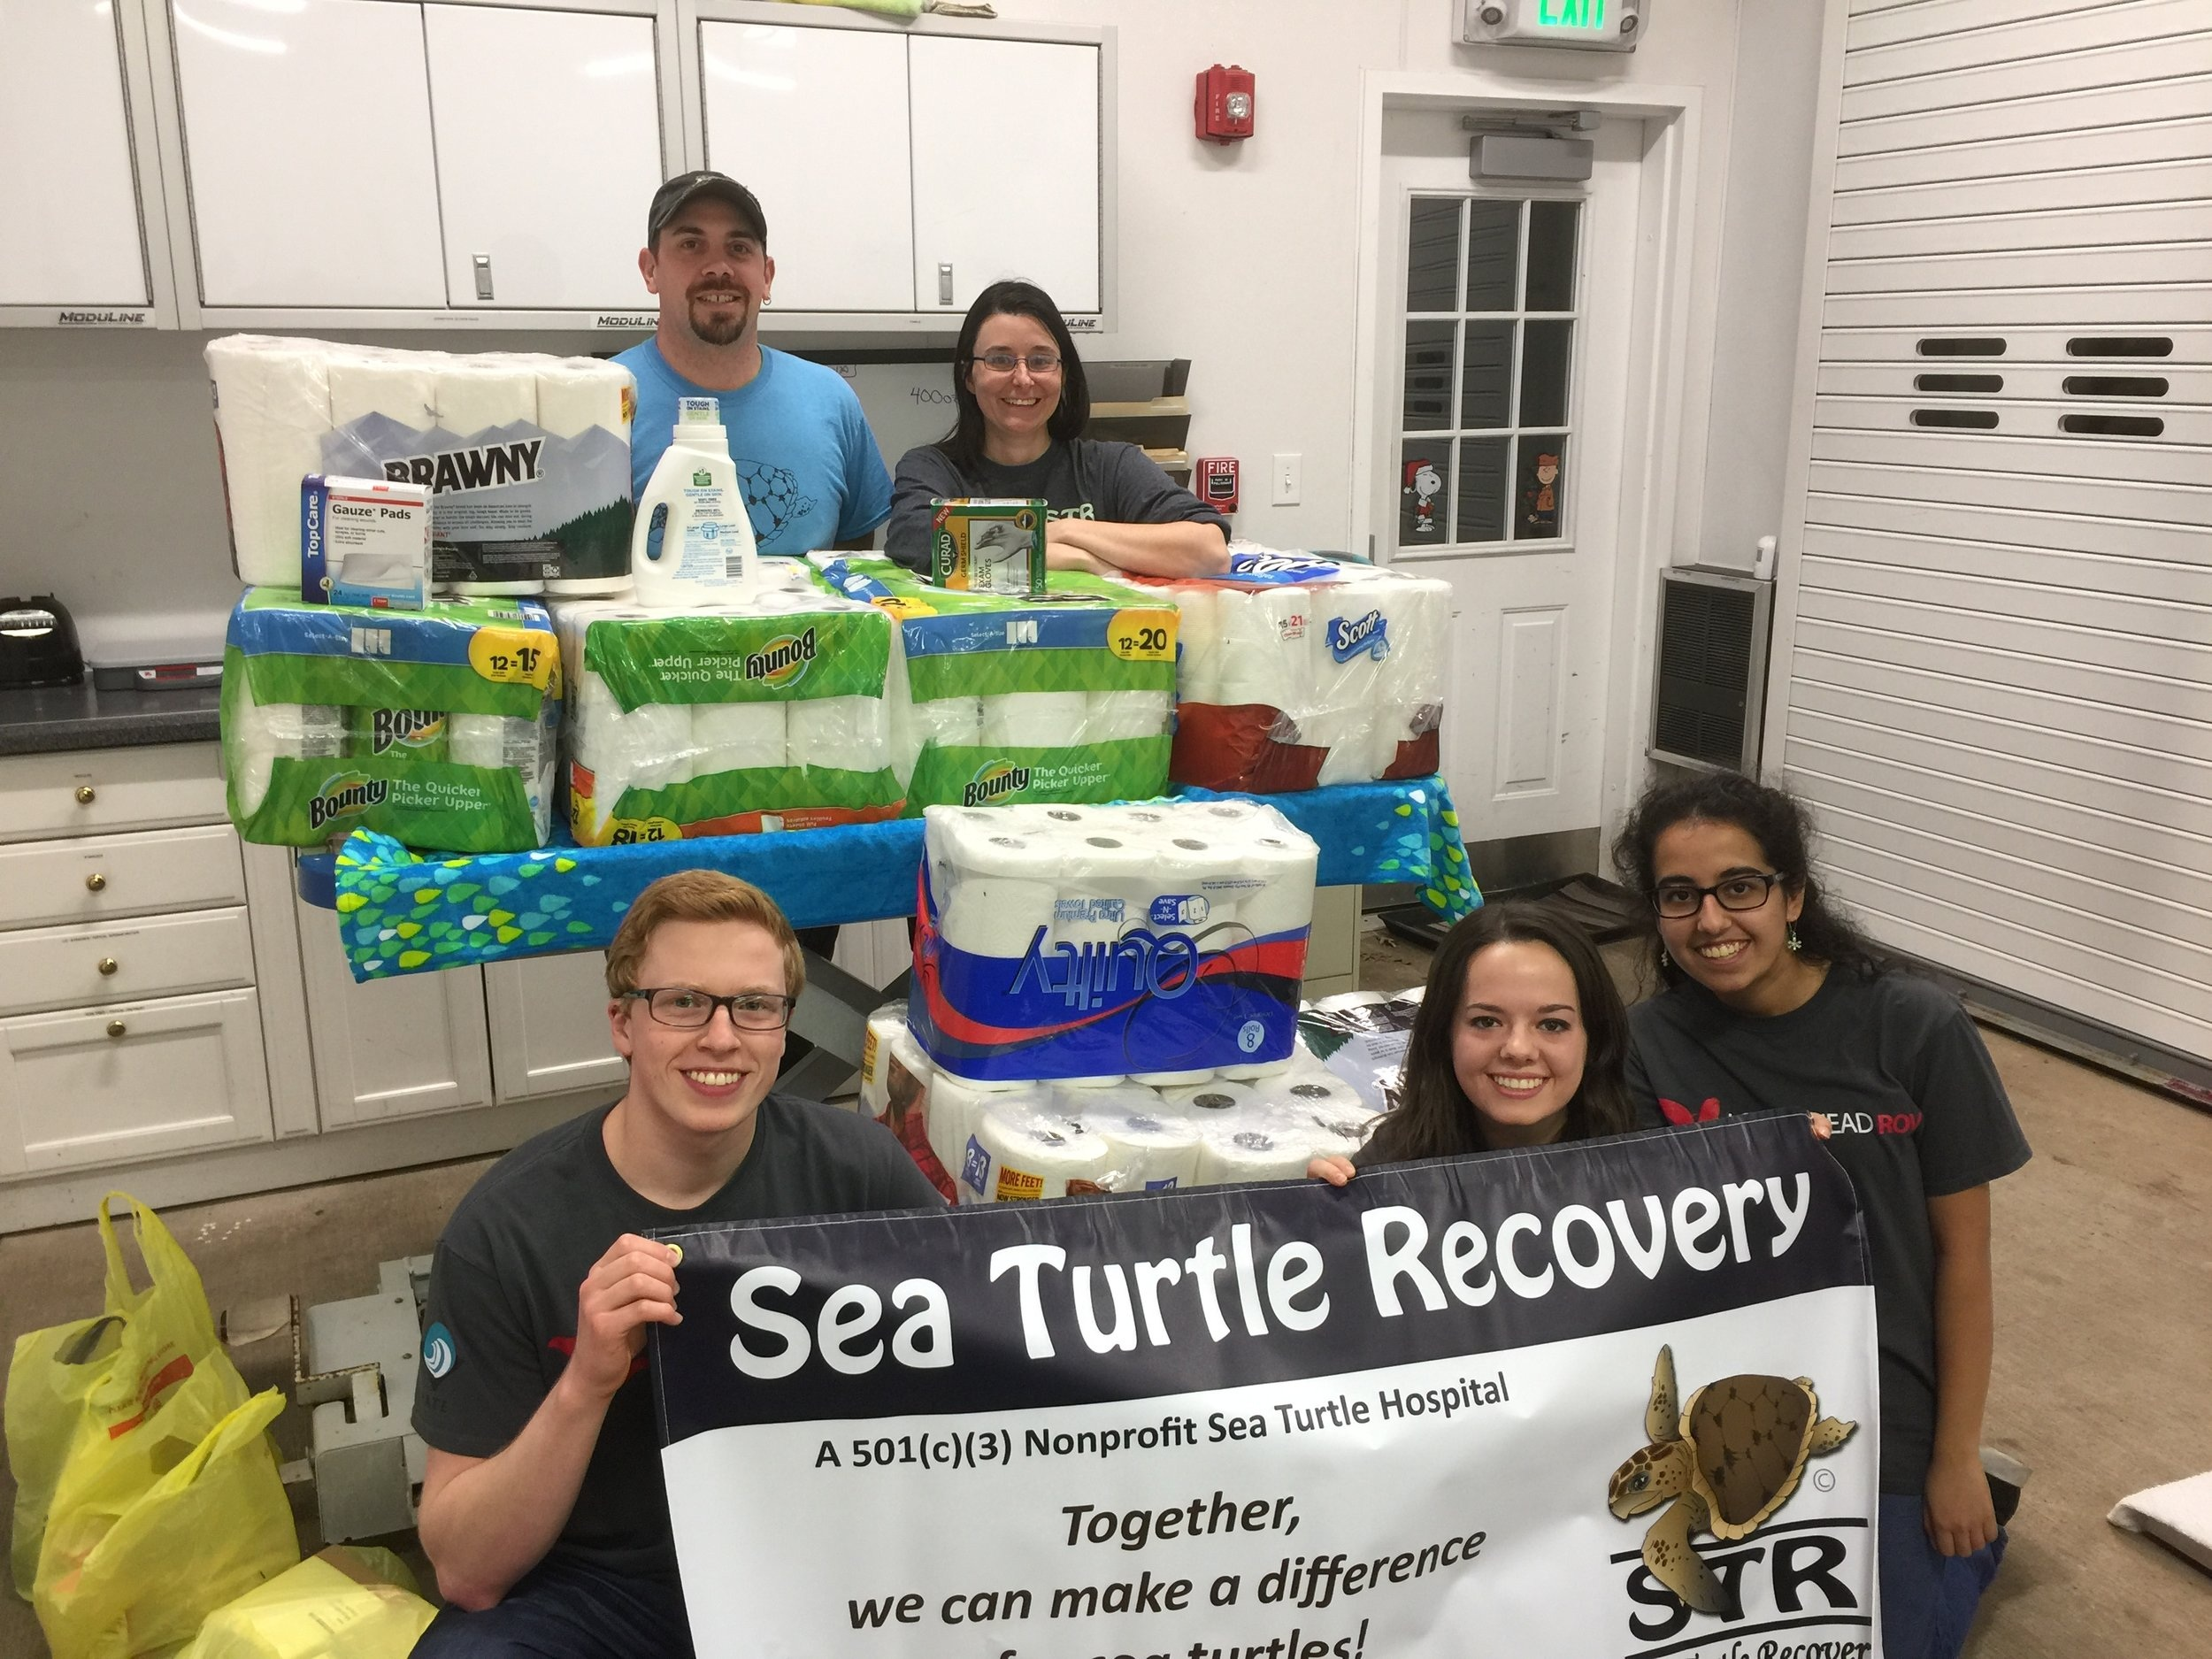 Delivering our donations we collected to assist Sea Turtle Recovery's efforts in caring for their sea turtle patients that arrived from Massachusetts's November cold stunning event.